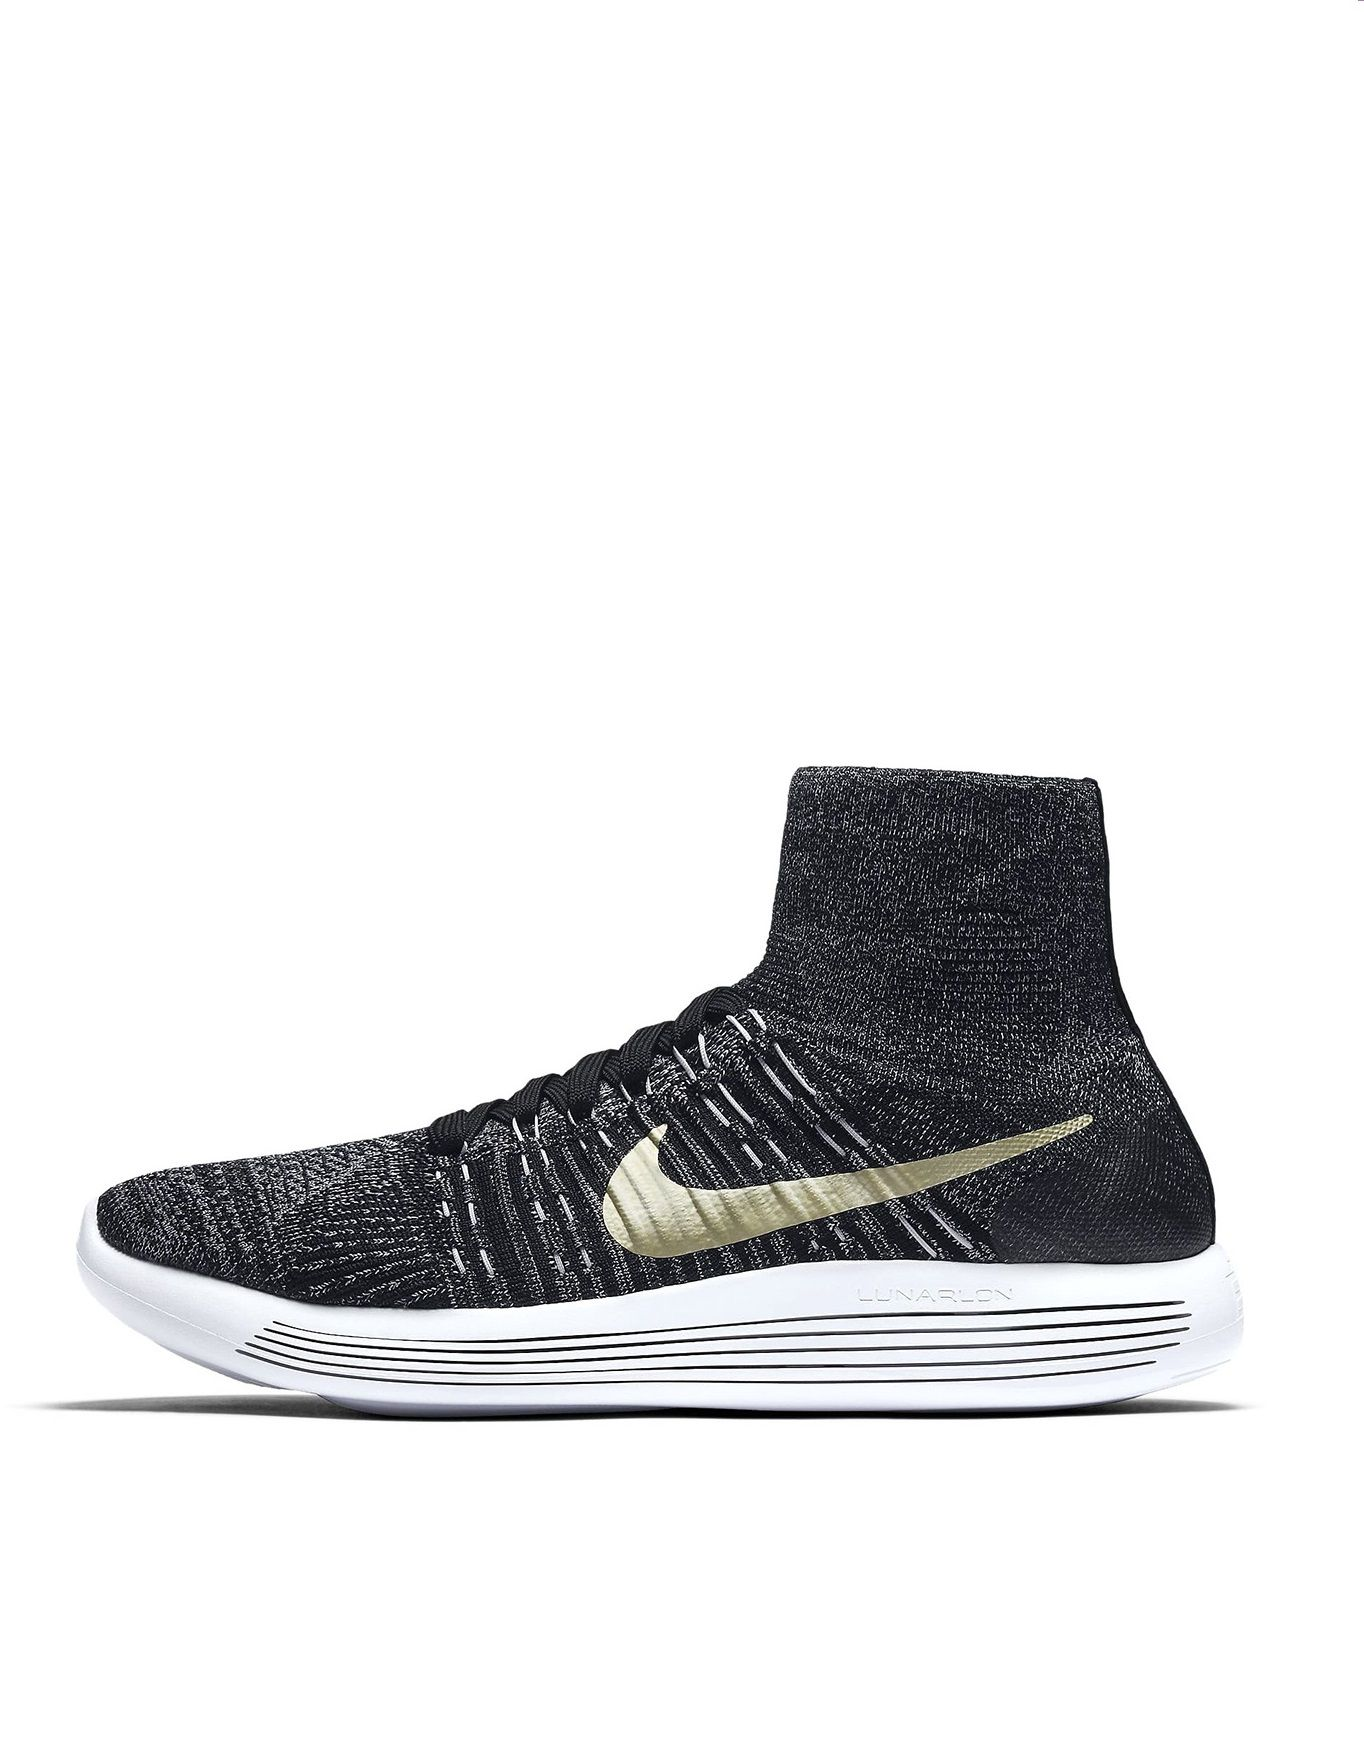 UK Outlet LunarEpic Flyknit Nike running shoes for Women